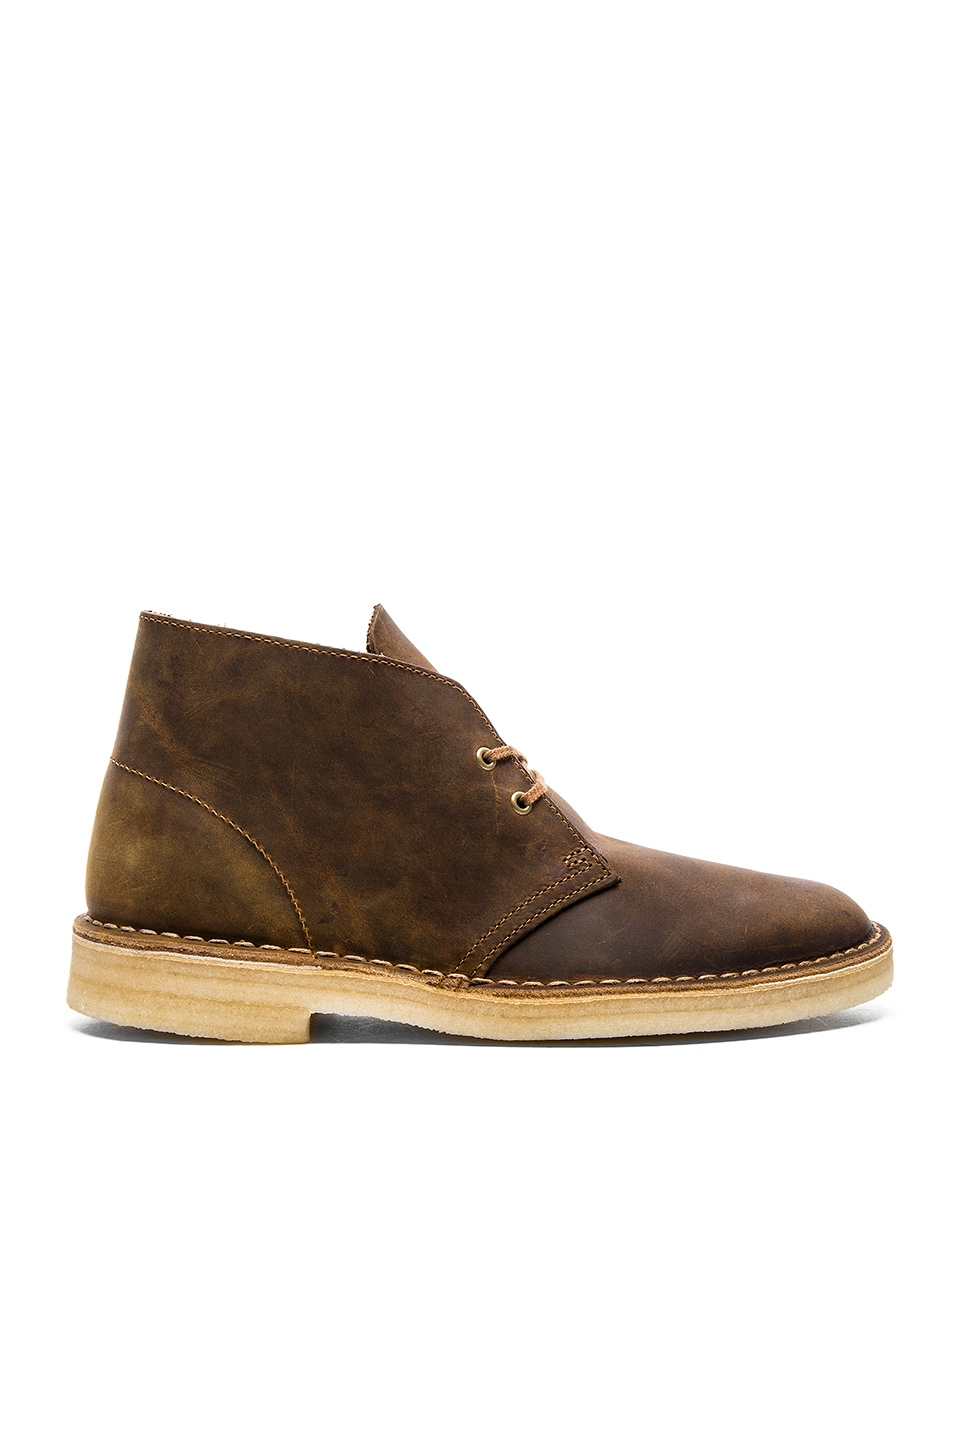 Originals Desert Boot by Clarks